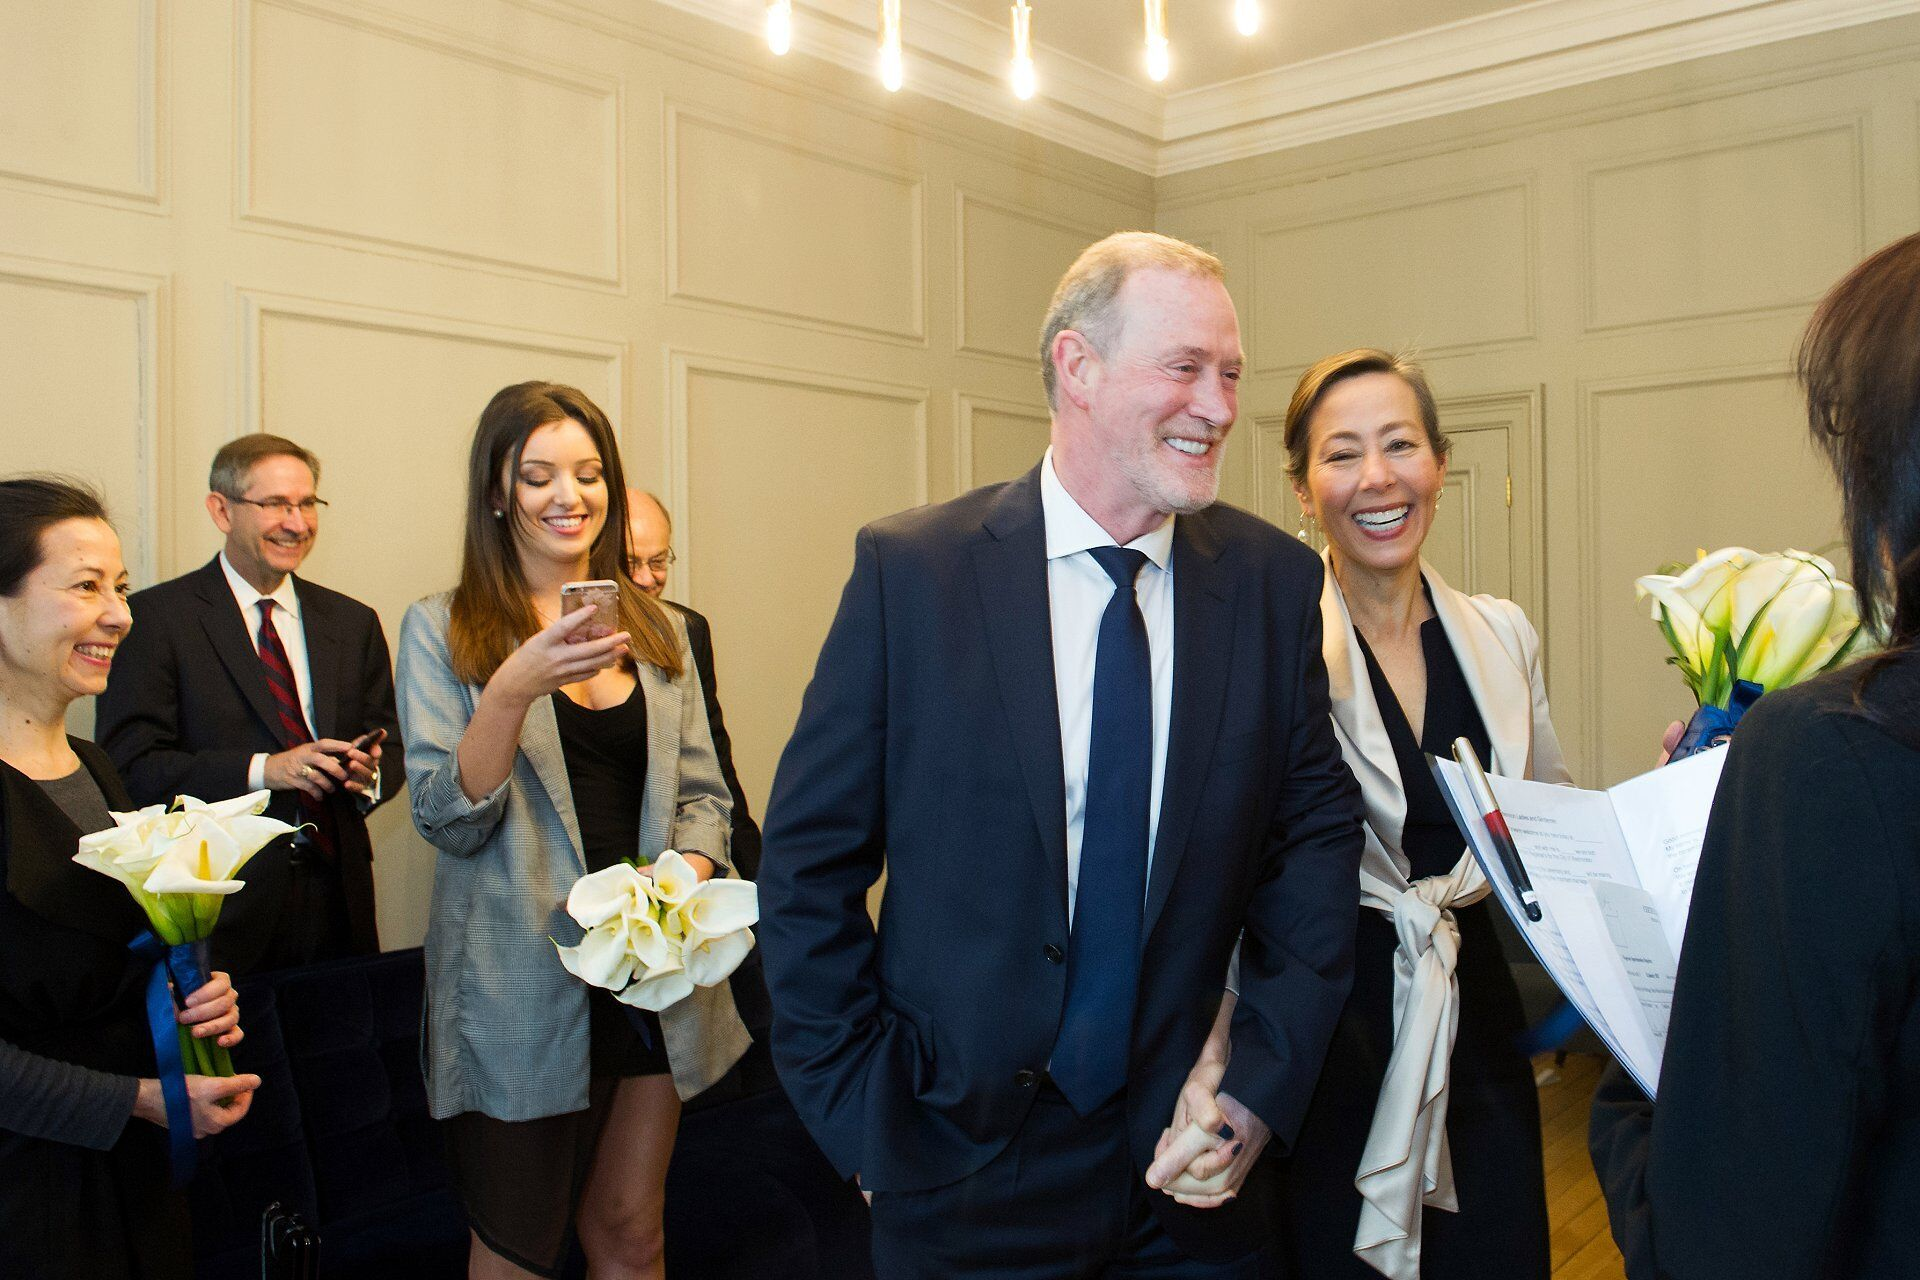 bride and groom enter soho room wedding ceremony at old marylebone town hall full of smiles